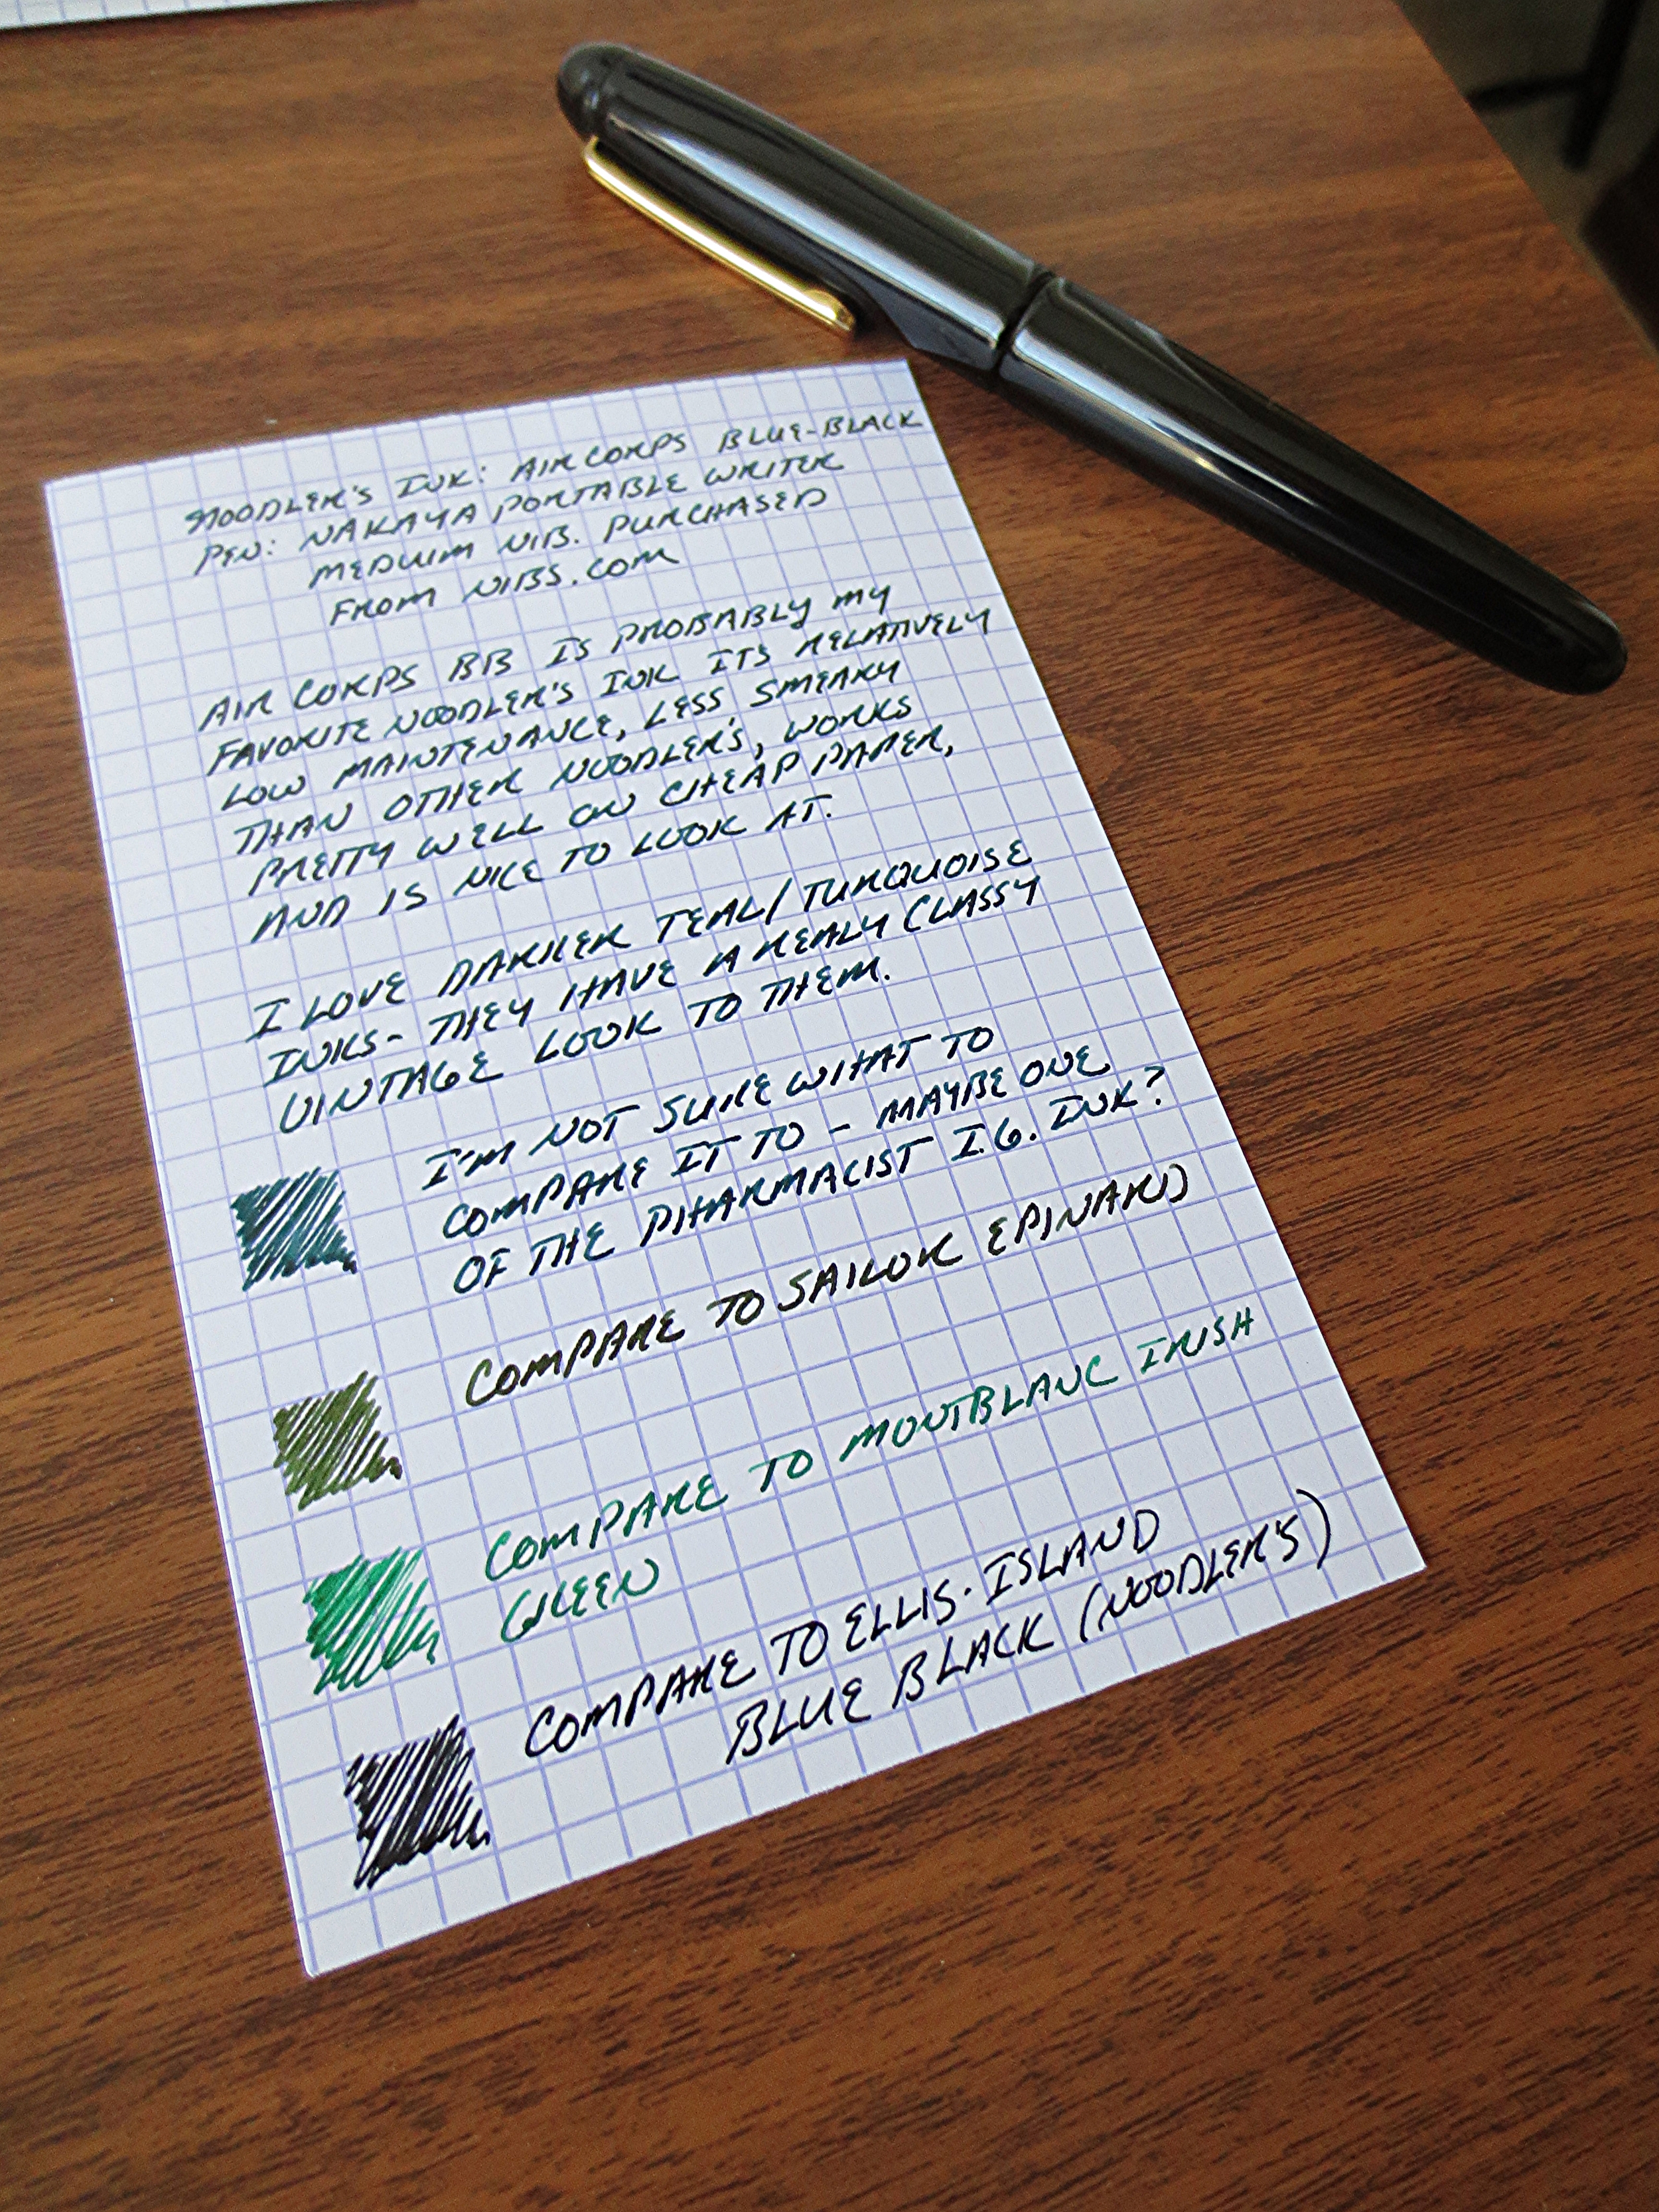 I compared this to three other inks I had loaded up:  Montblanc's Irish Green, Sailor's Epinard, and Noodler's Ellis Island Blue-Black, all of which I like, and the latter of which I really want to love, if not for the fact that it seemingly never dries (in a fine nib, no less).  Grrrr...